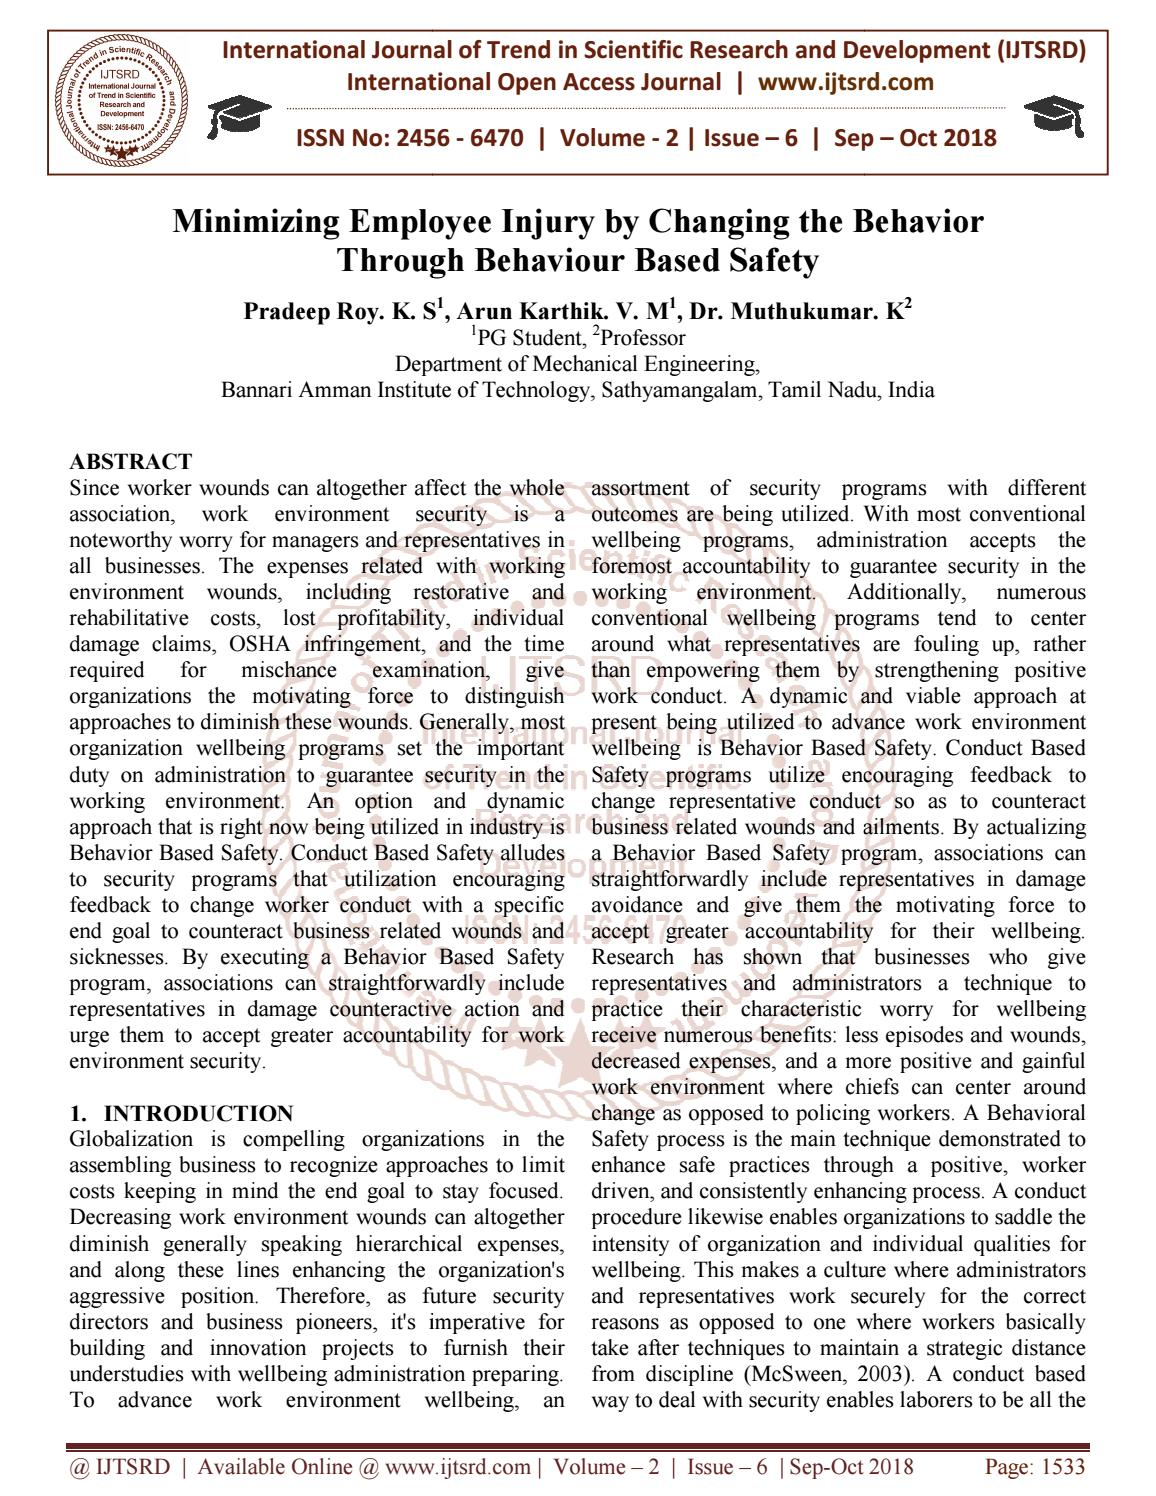 Minimizing Employee Injury by Changing the Behavior Through